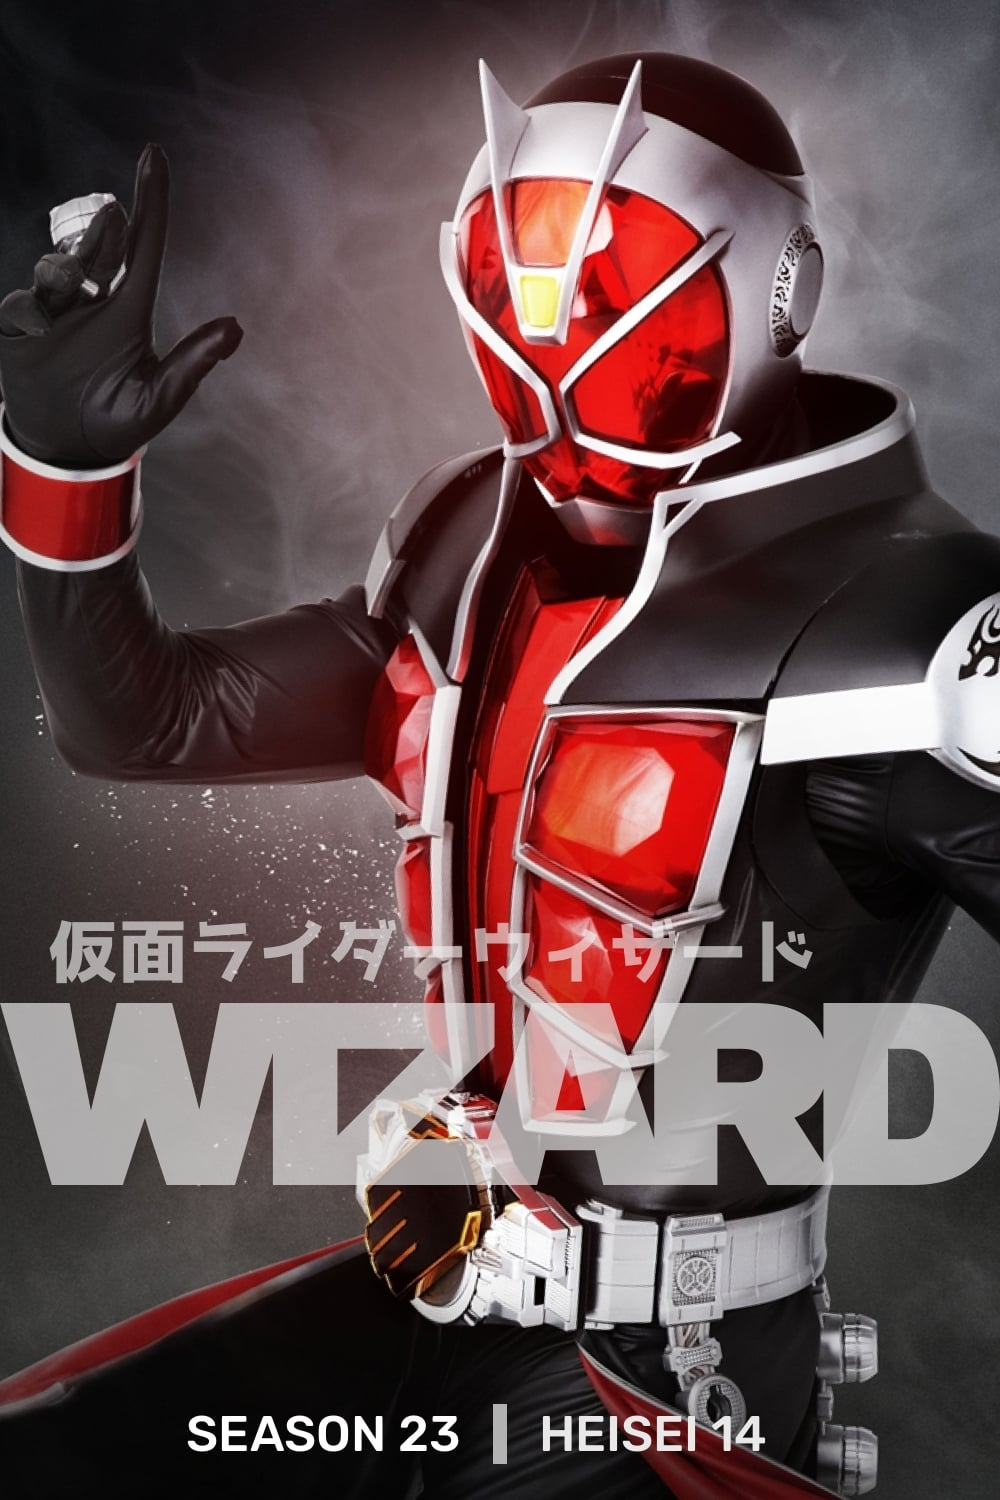 Kamen Rider - Season 21 Episode 42 : Ice, Greeed Form, Broken Wings Season 23